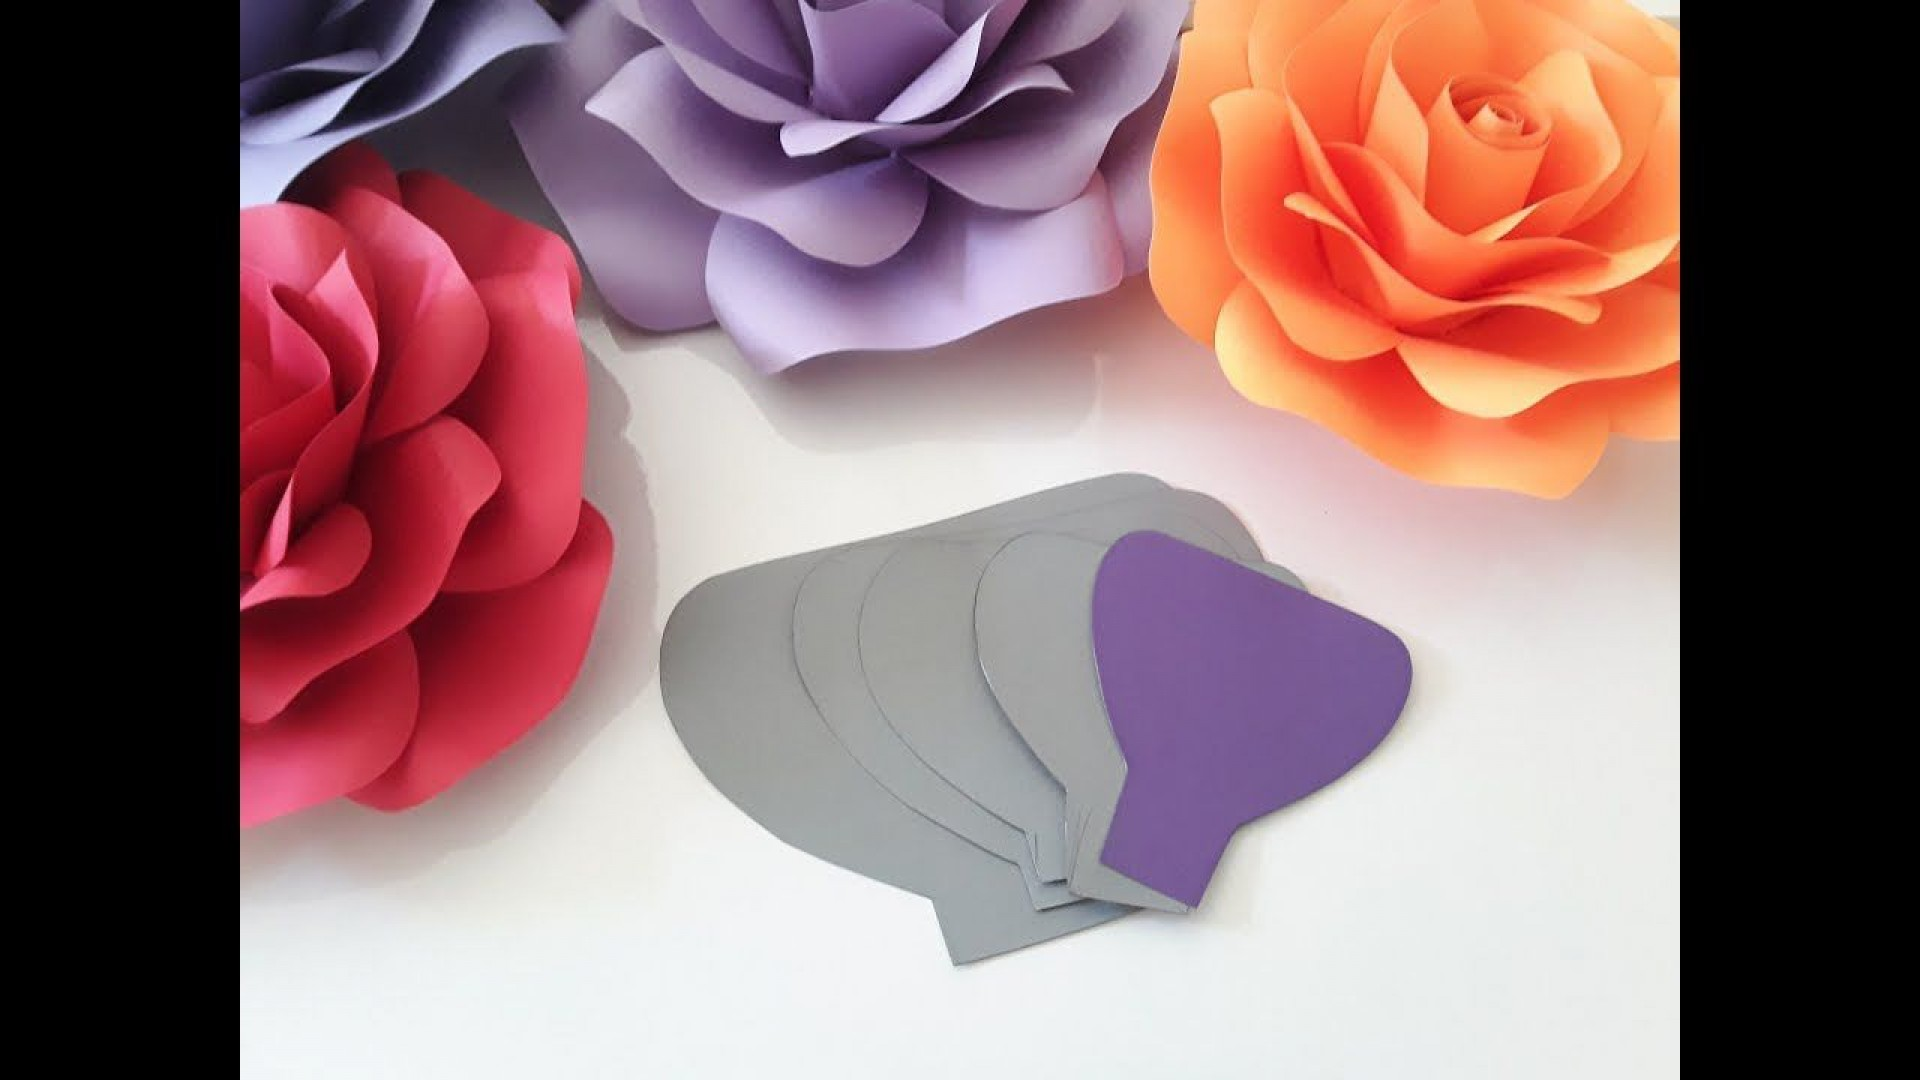 009 Unbelievable Paper Rose Template Pdf Sample  Flower Giant Free Crepe1920